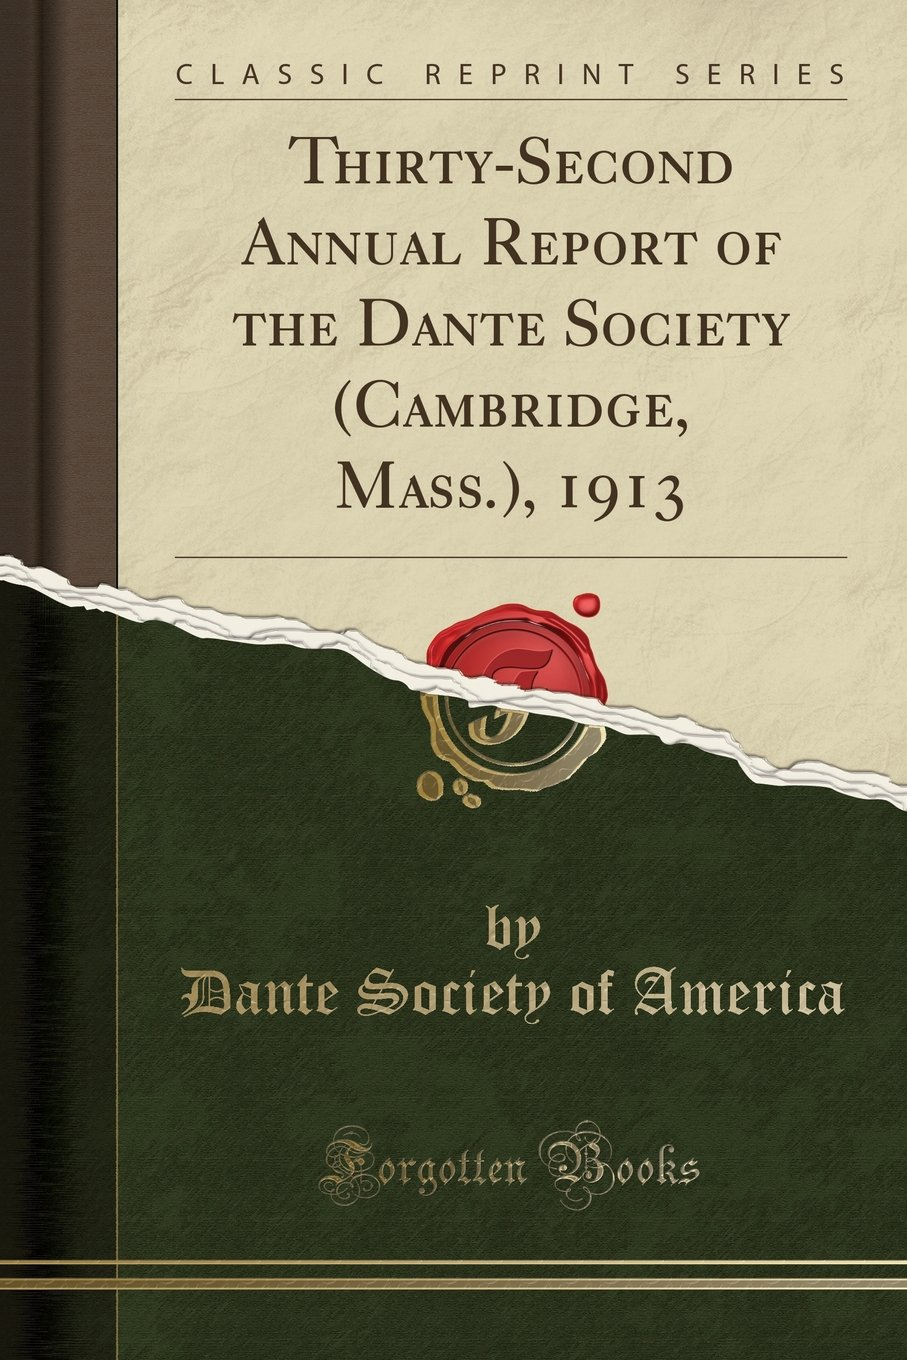 Thirty-Second Annual Report of the Dante Society (Cambridge, Mass.), 1913 (Classic Reprint) PDF